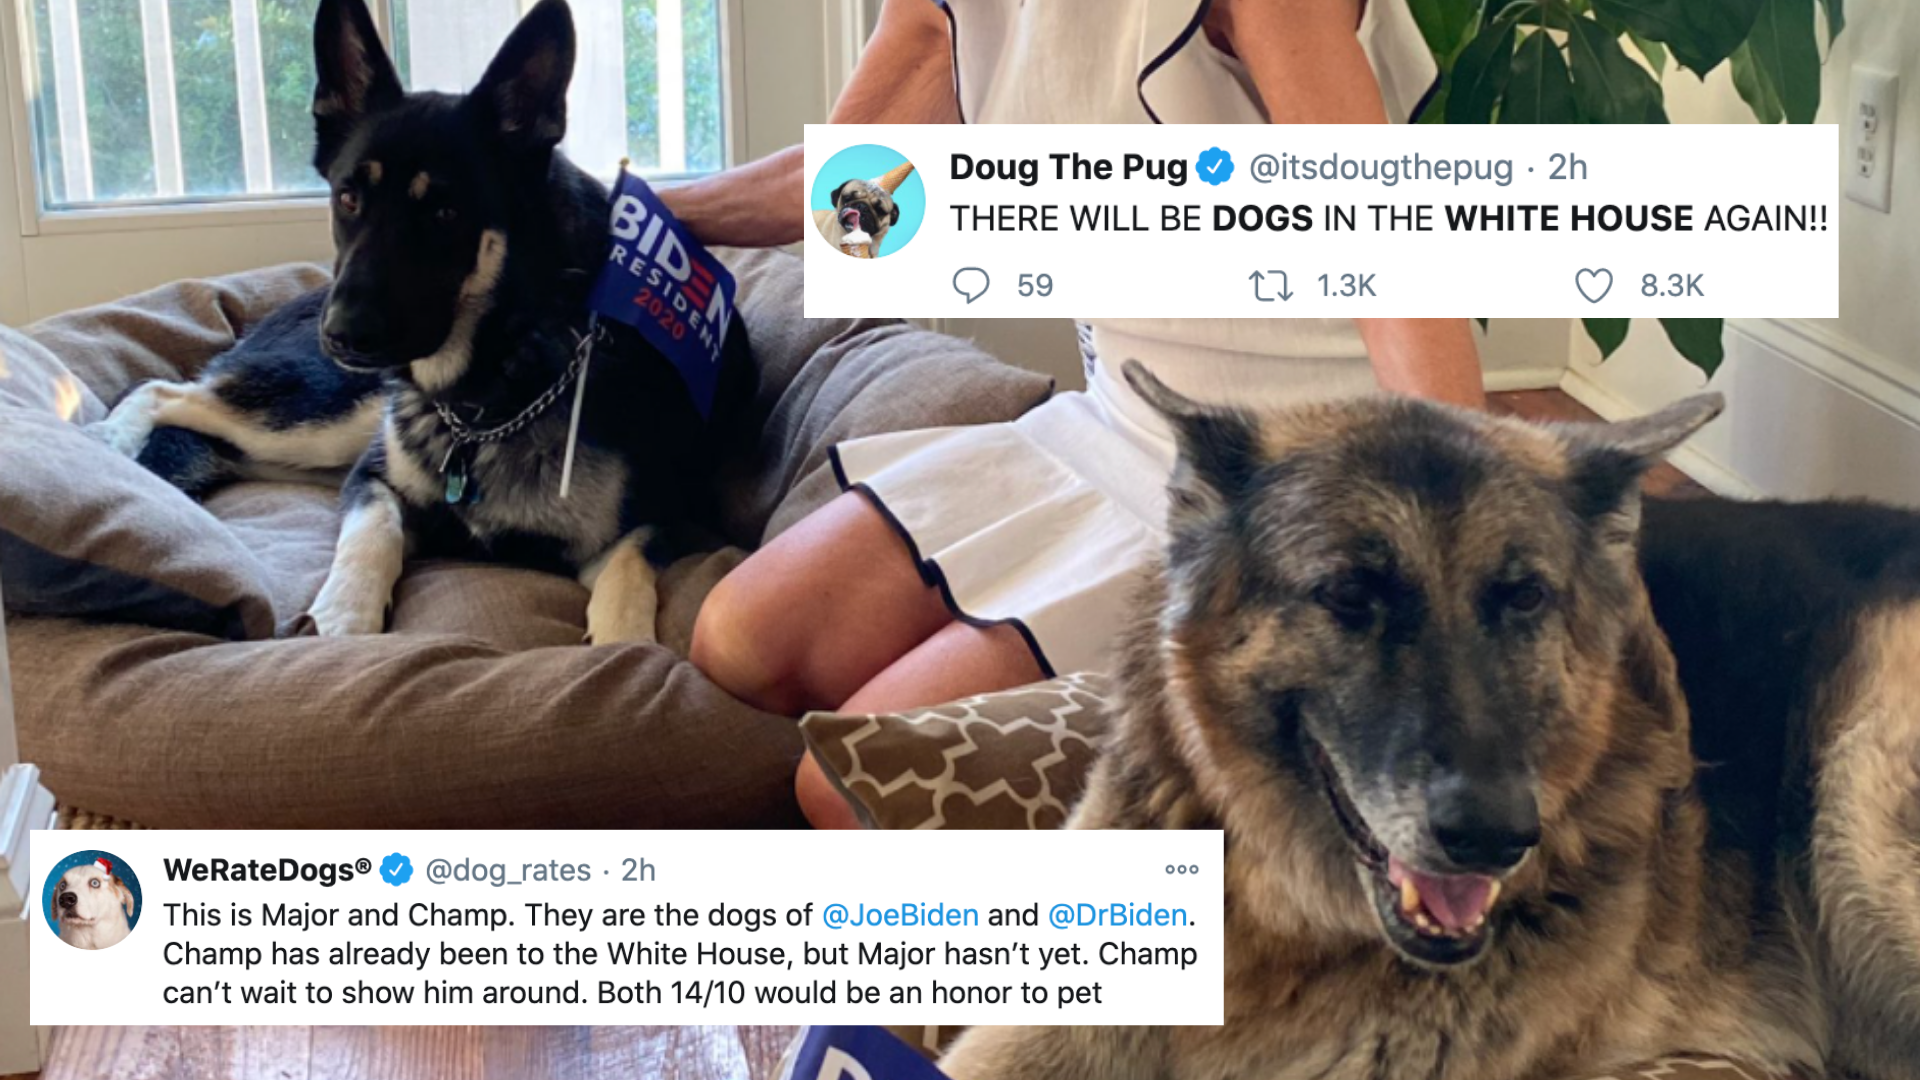 Twitter celebrates dogs coming back to the White House